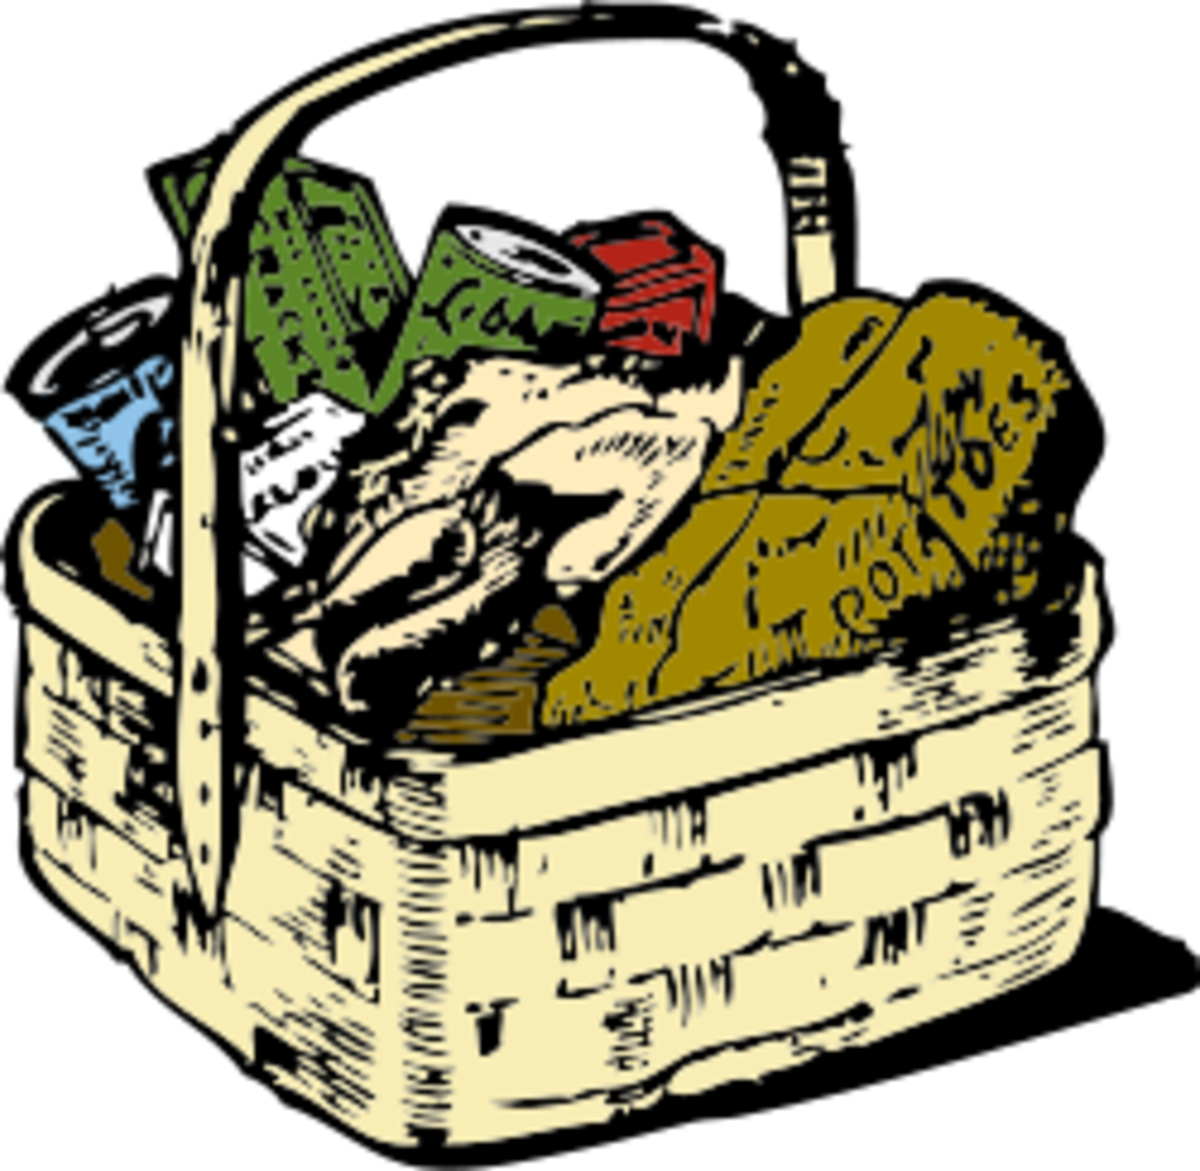 {Image: A basket full of food.}